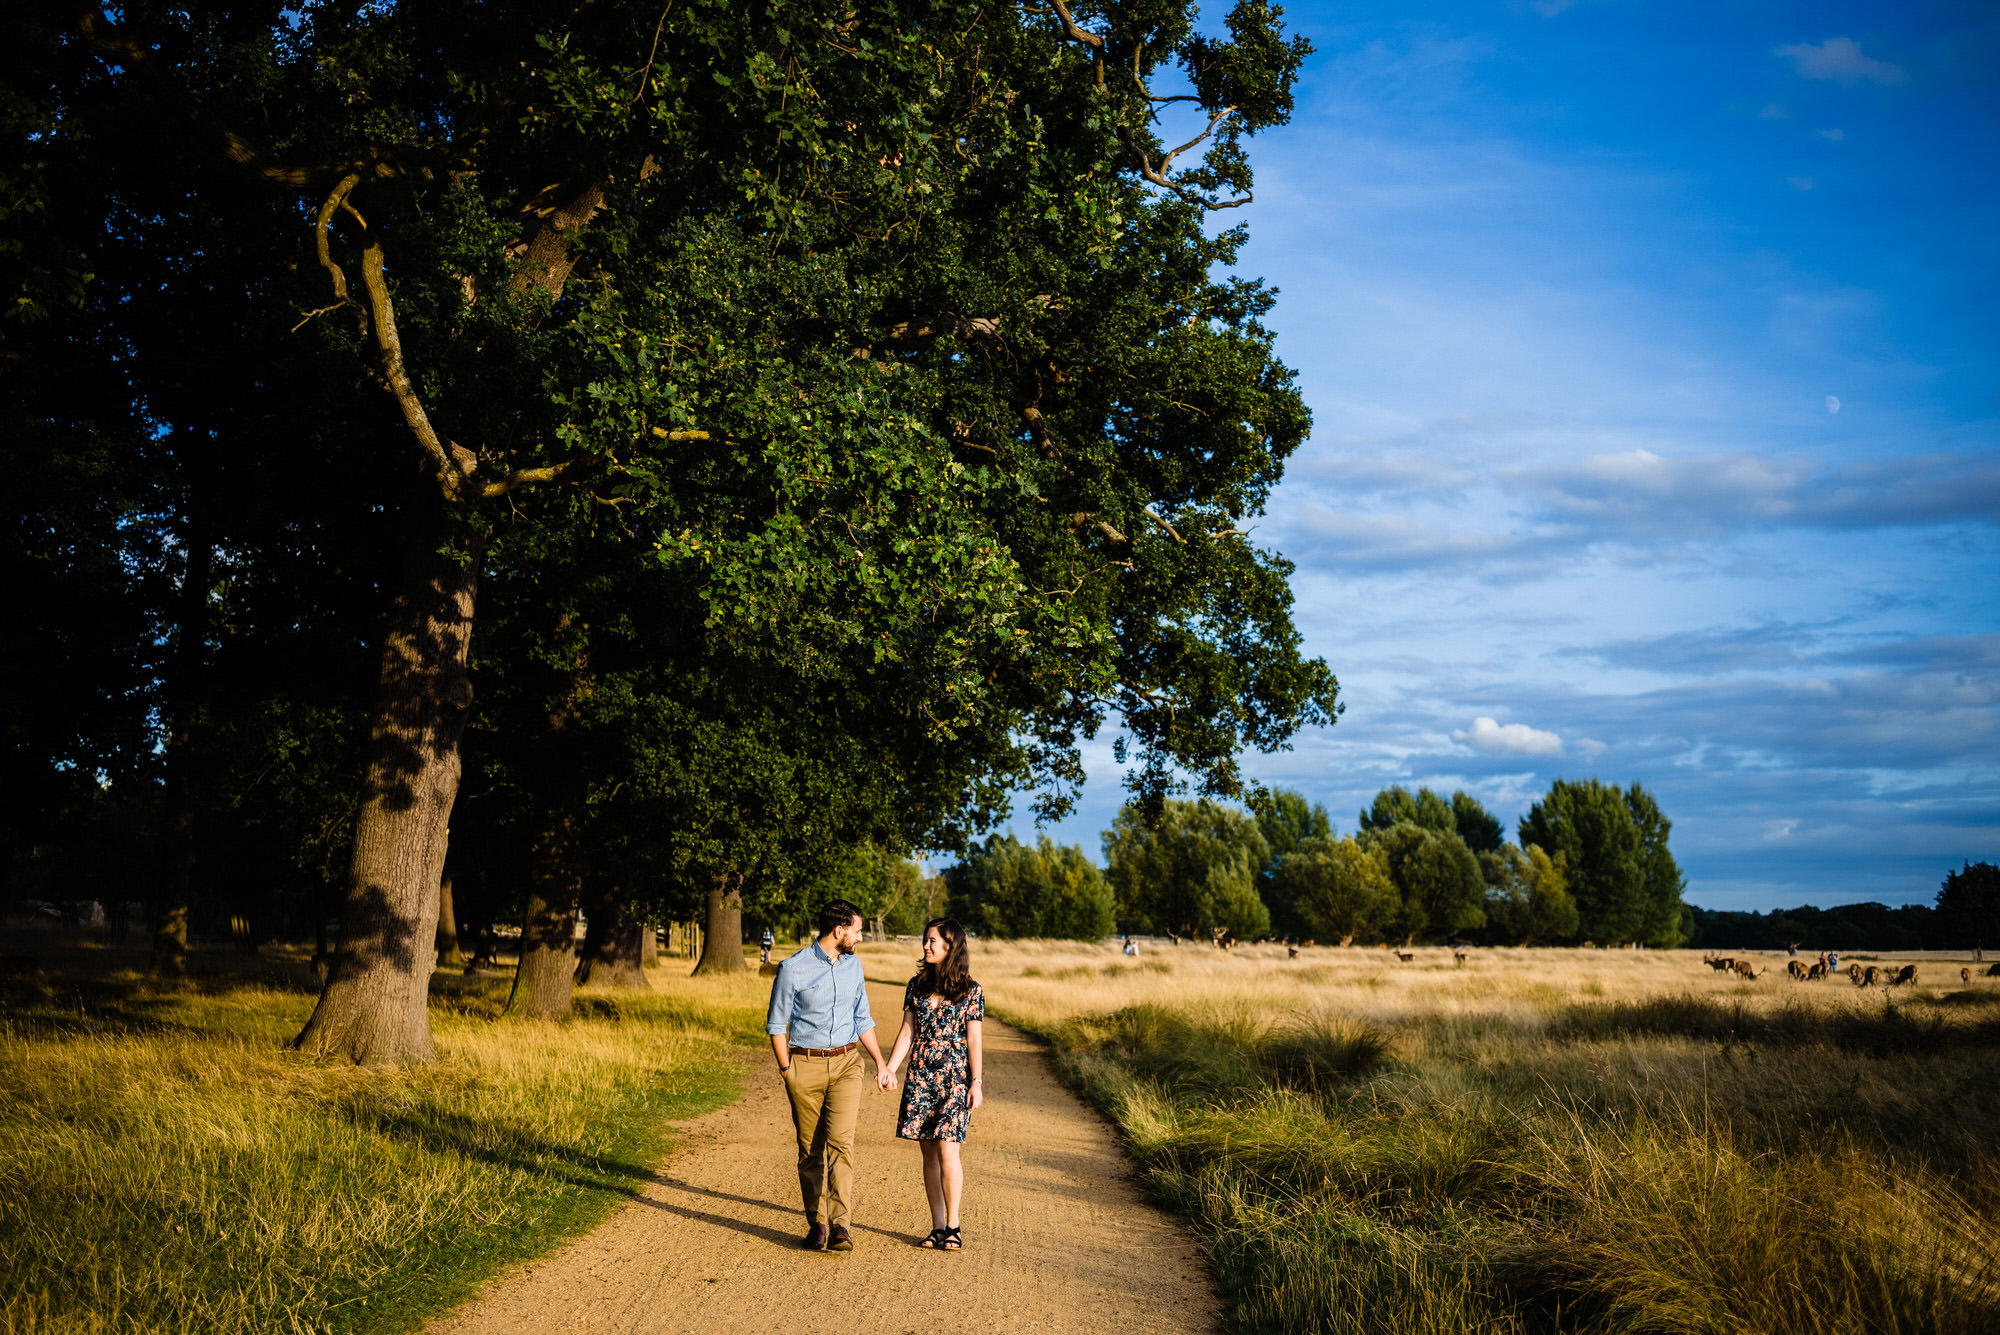 Richmond park london portrait photography 4